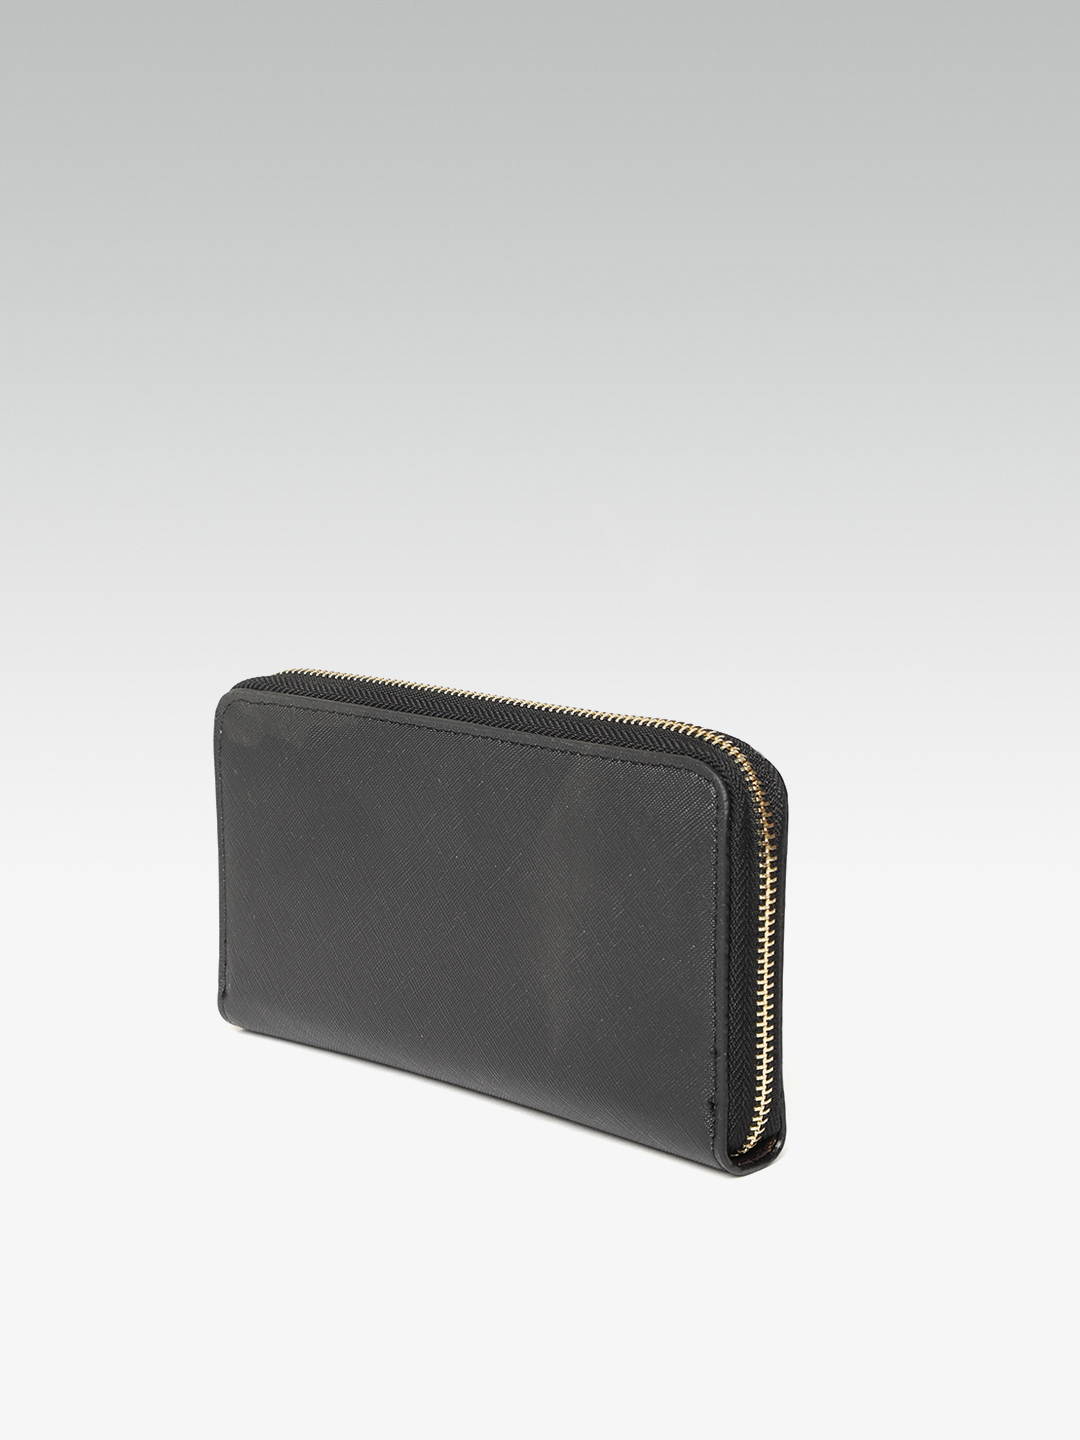 Wallets and Makeup Pouches-Sticking To the Classics Black Wallet2